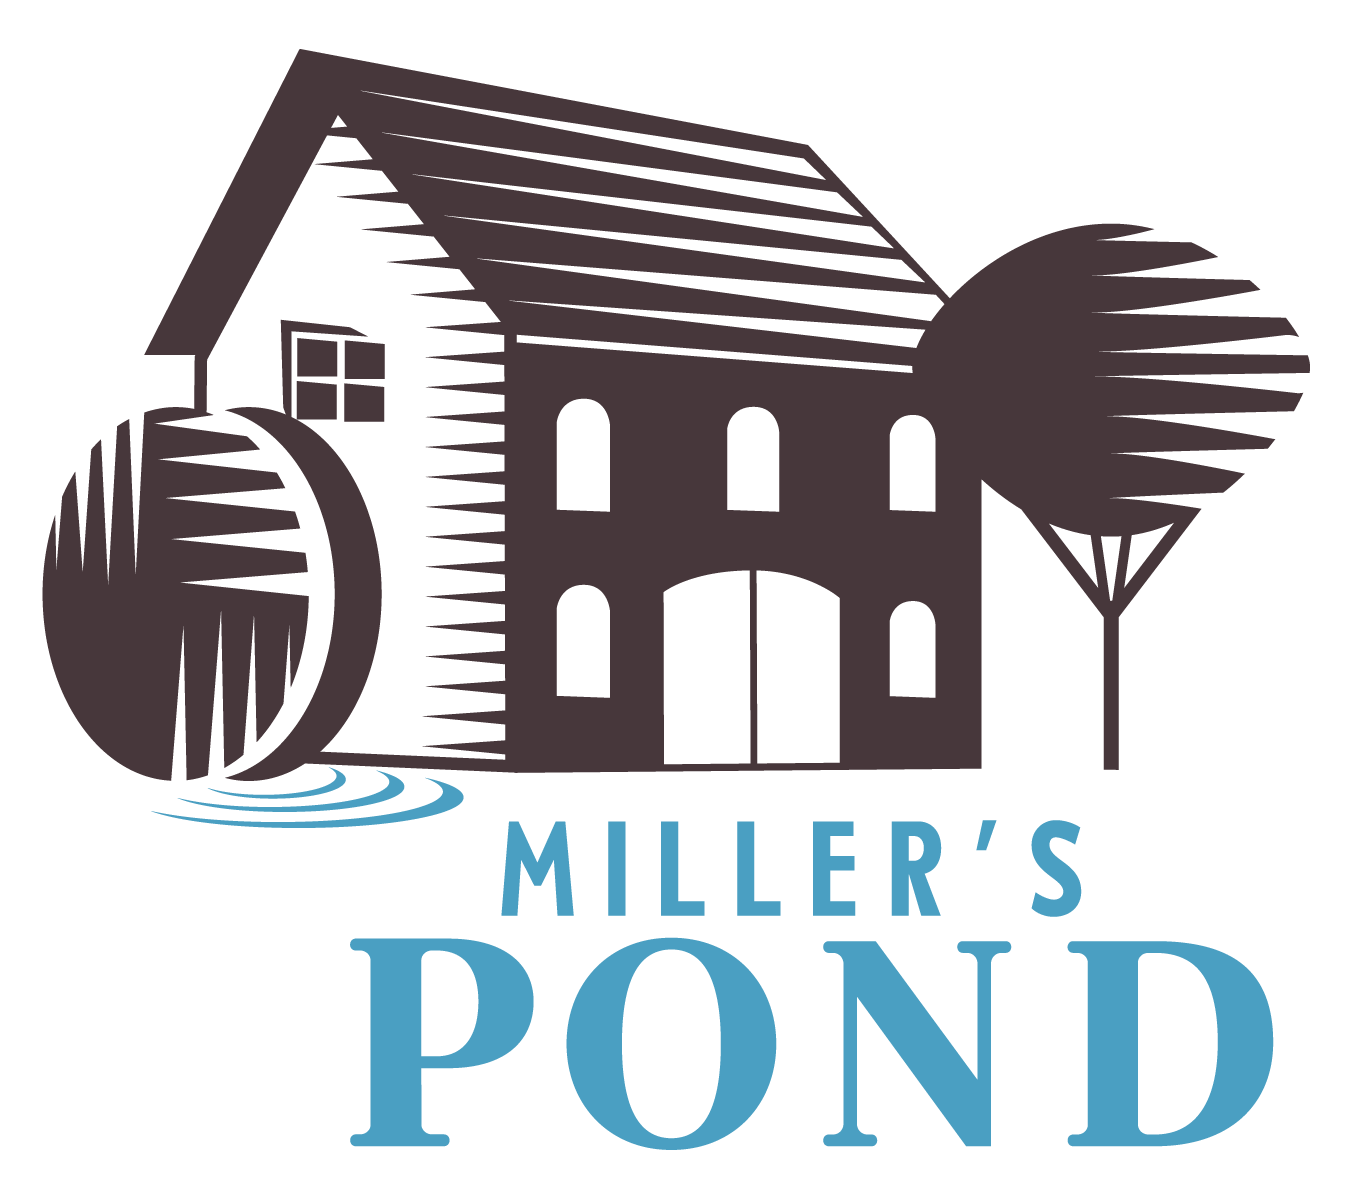 Miller's Pond, St. Thomas